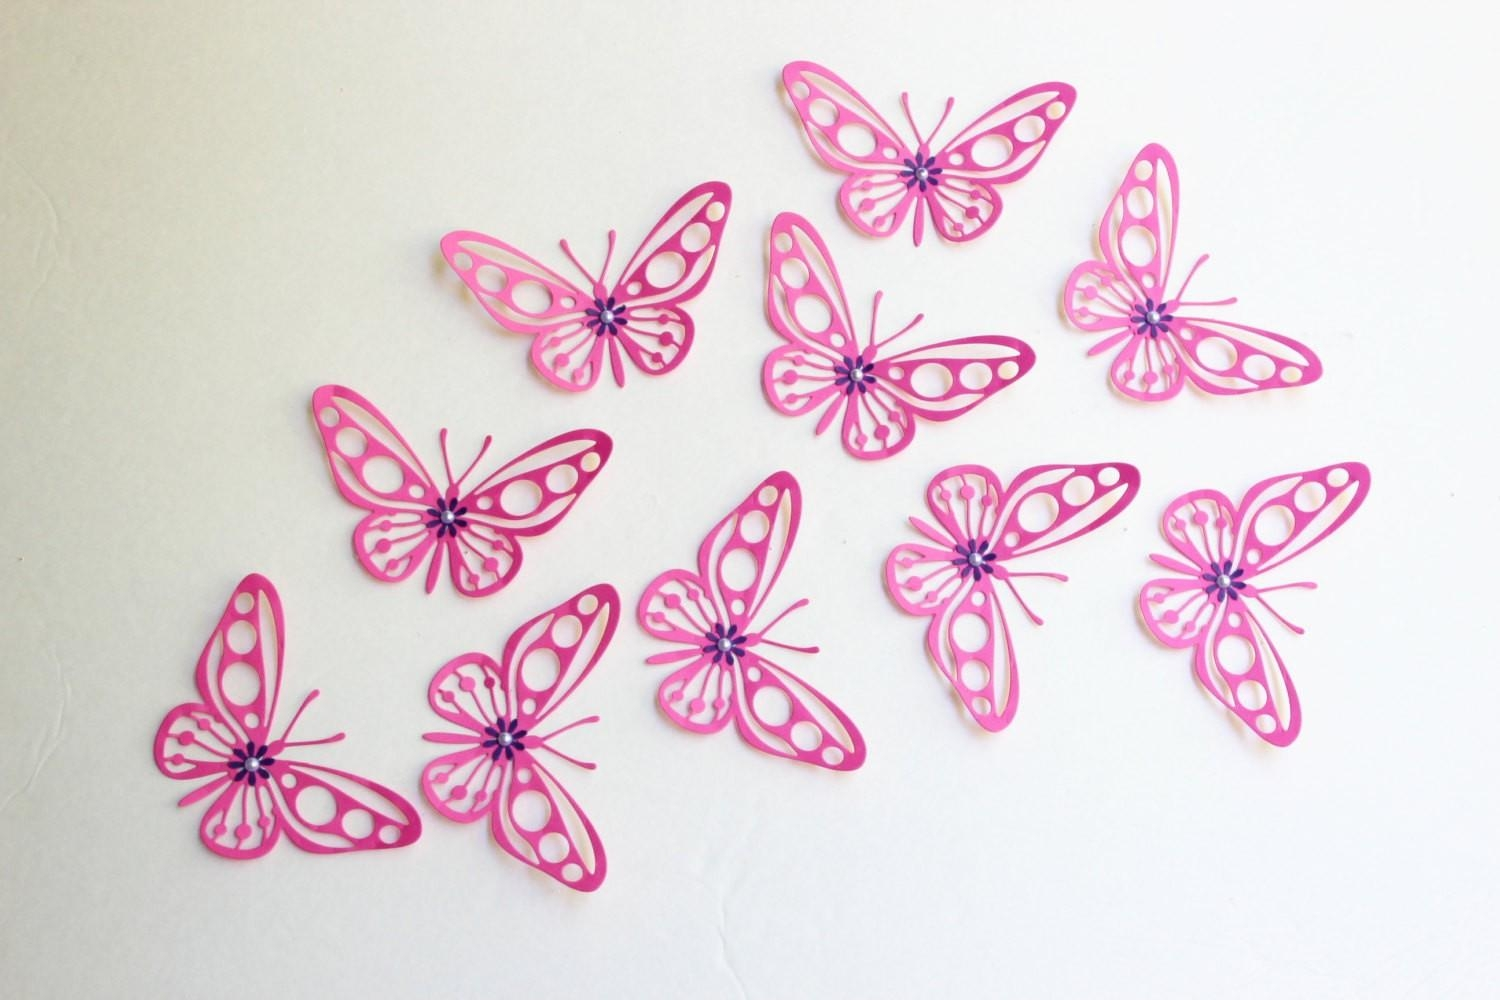 2014 Wall Decor Ideas - Pink Butterflies Butterfly Wall Art Paper inside Pink Butterfly Wall Art